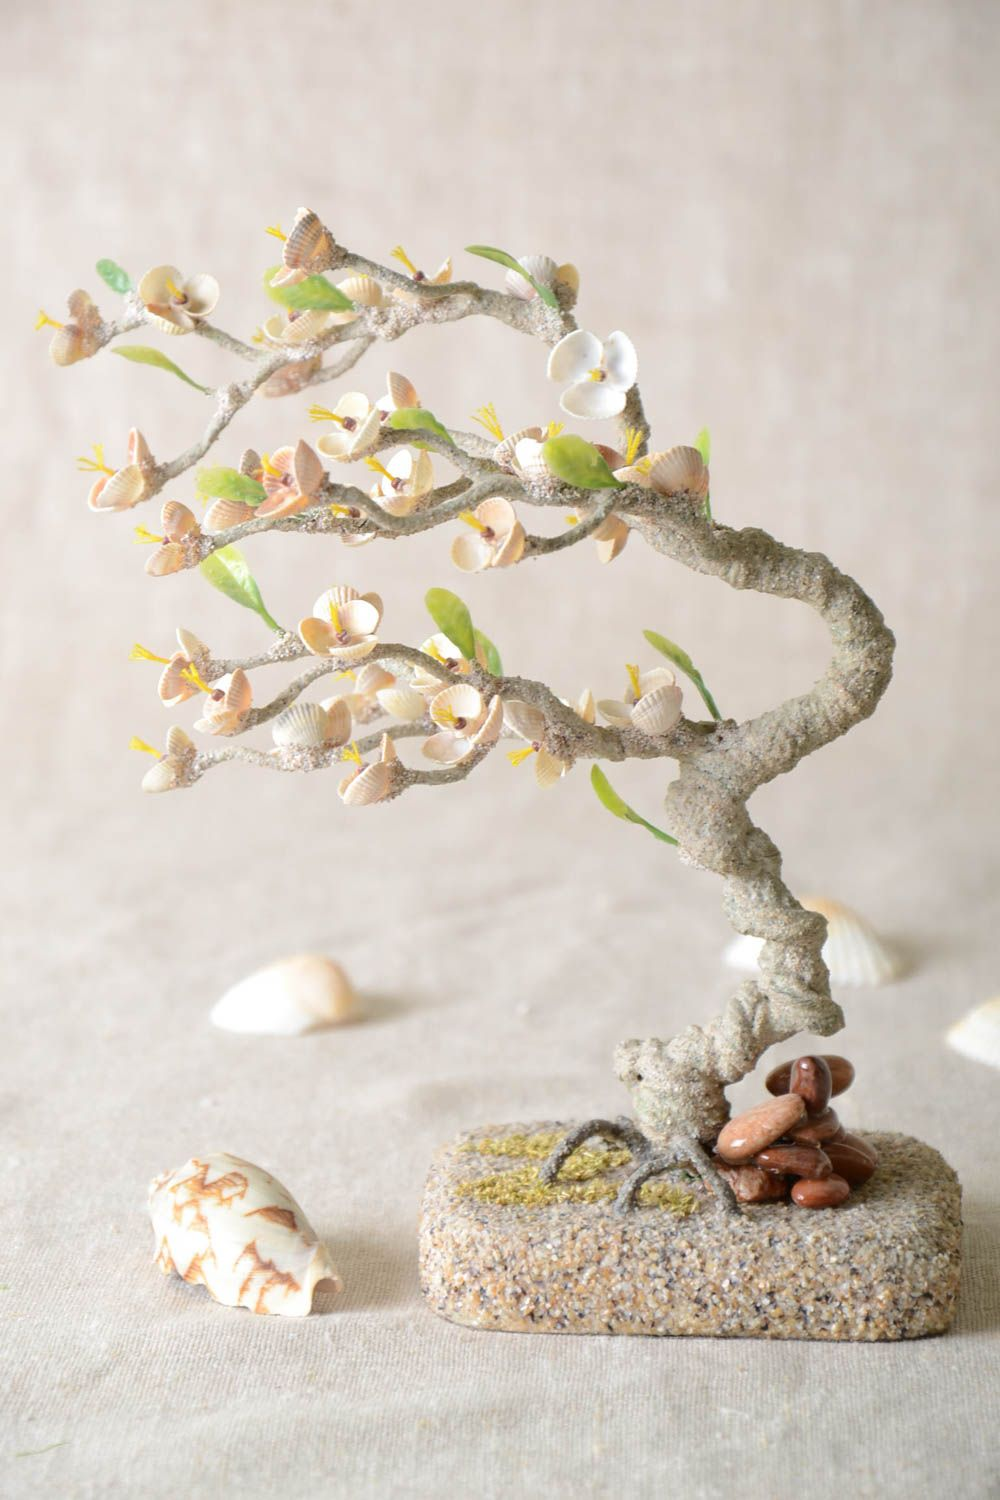 Handmade tree with flowers table decor gift ideas artificial tree home decor photo 1